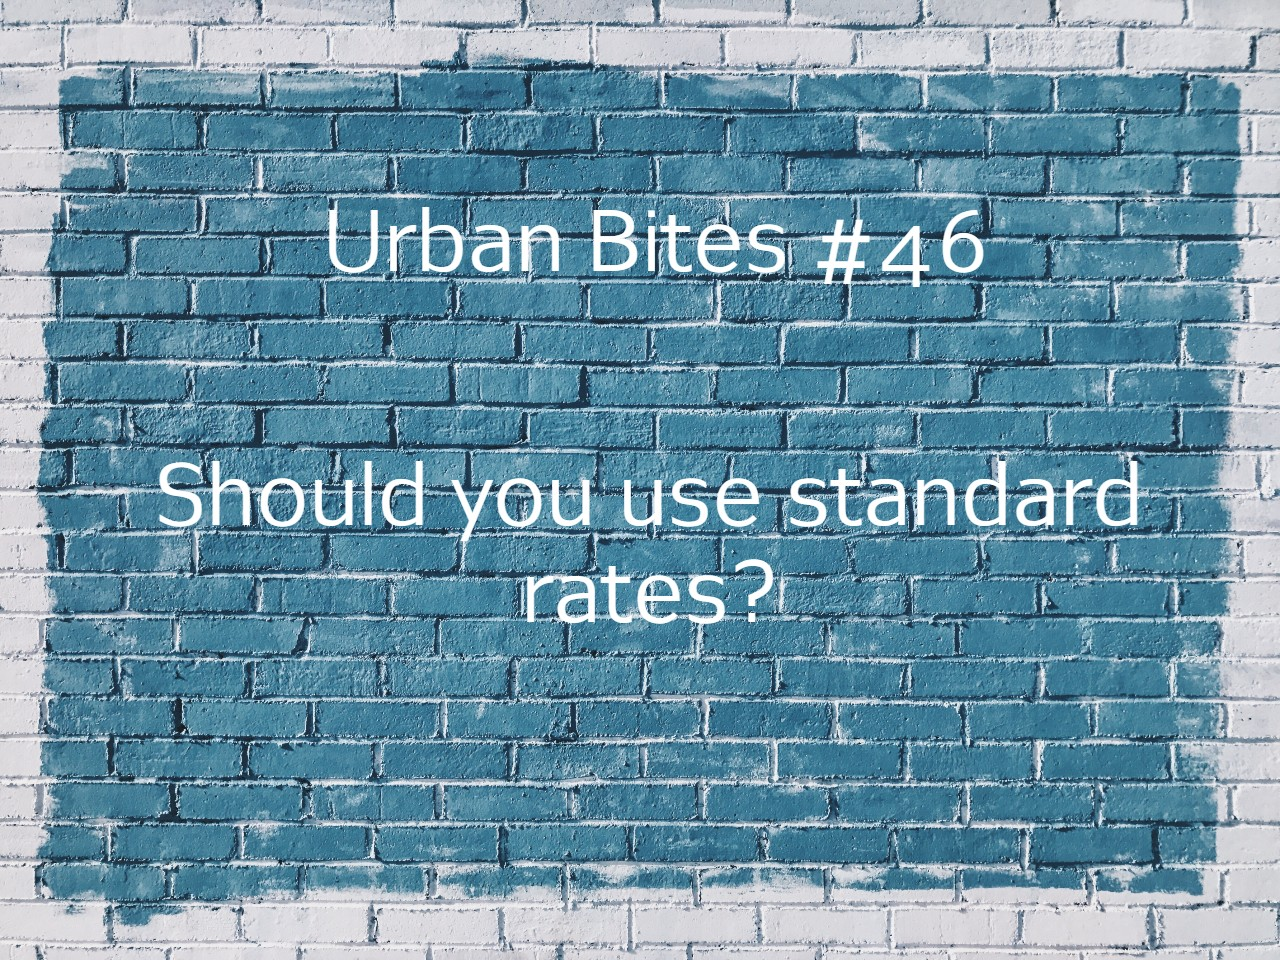 Should you use standard construction rates?